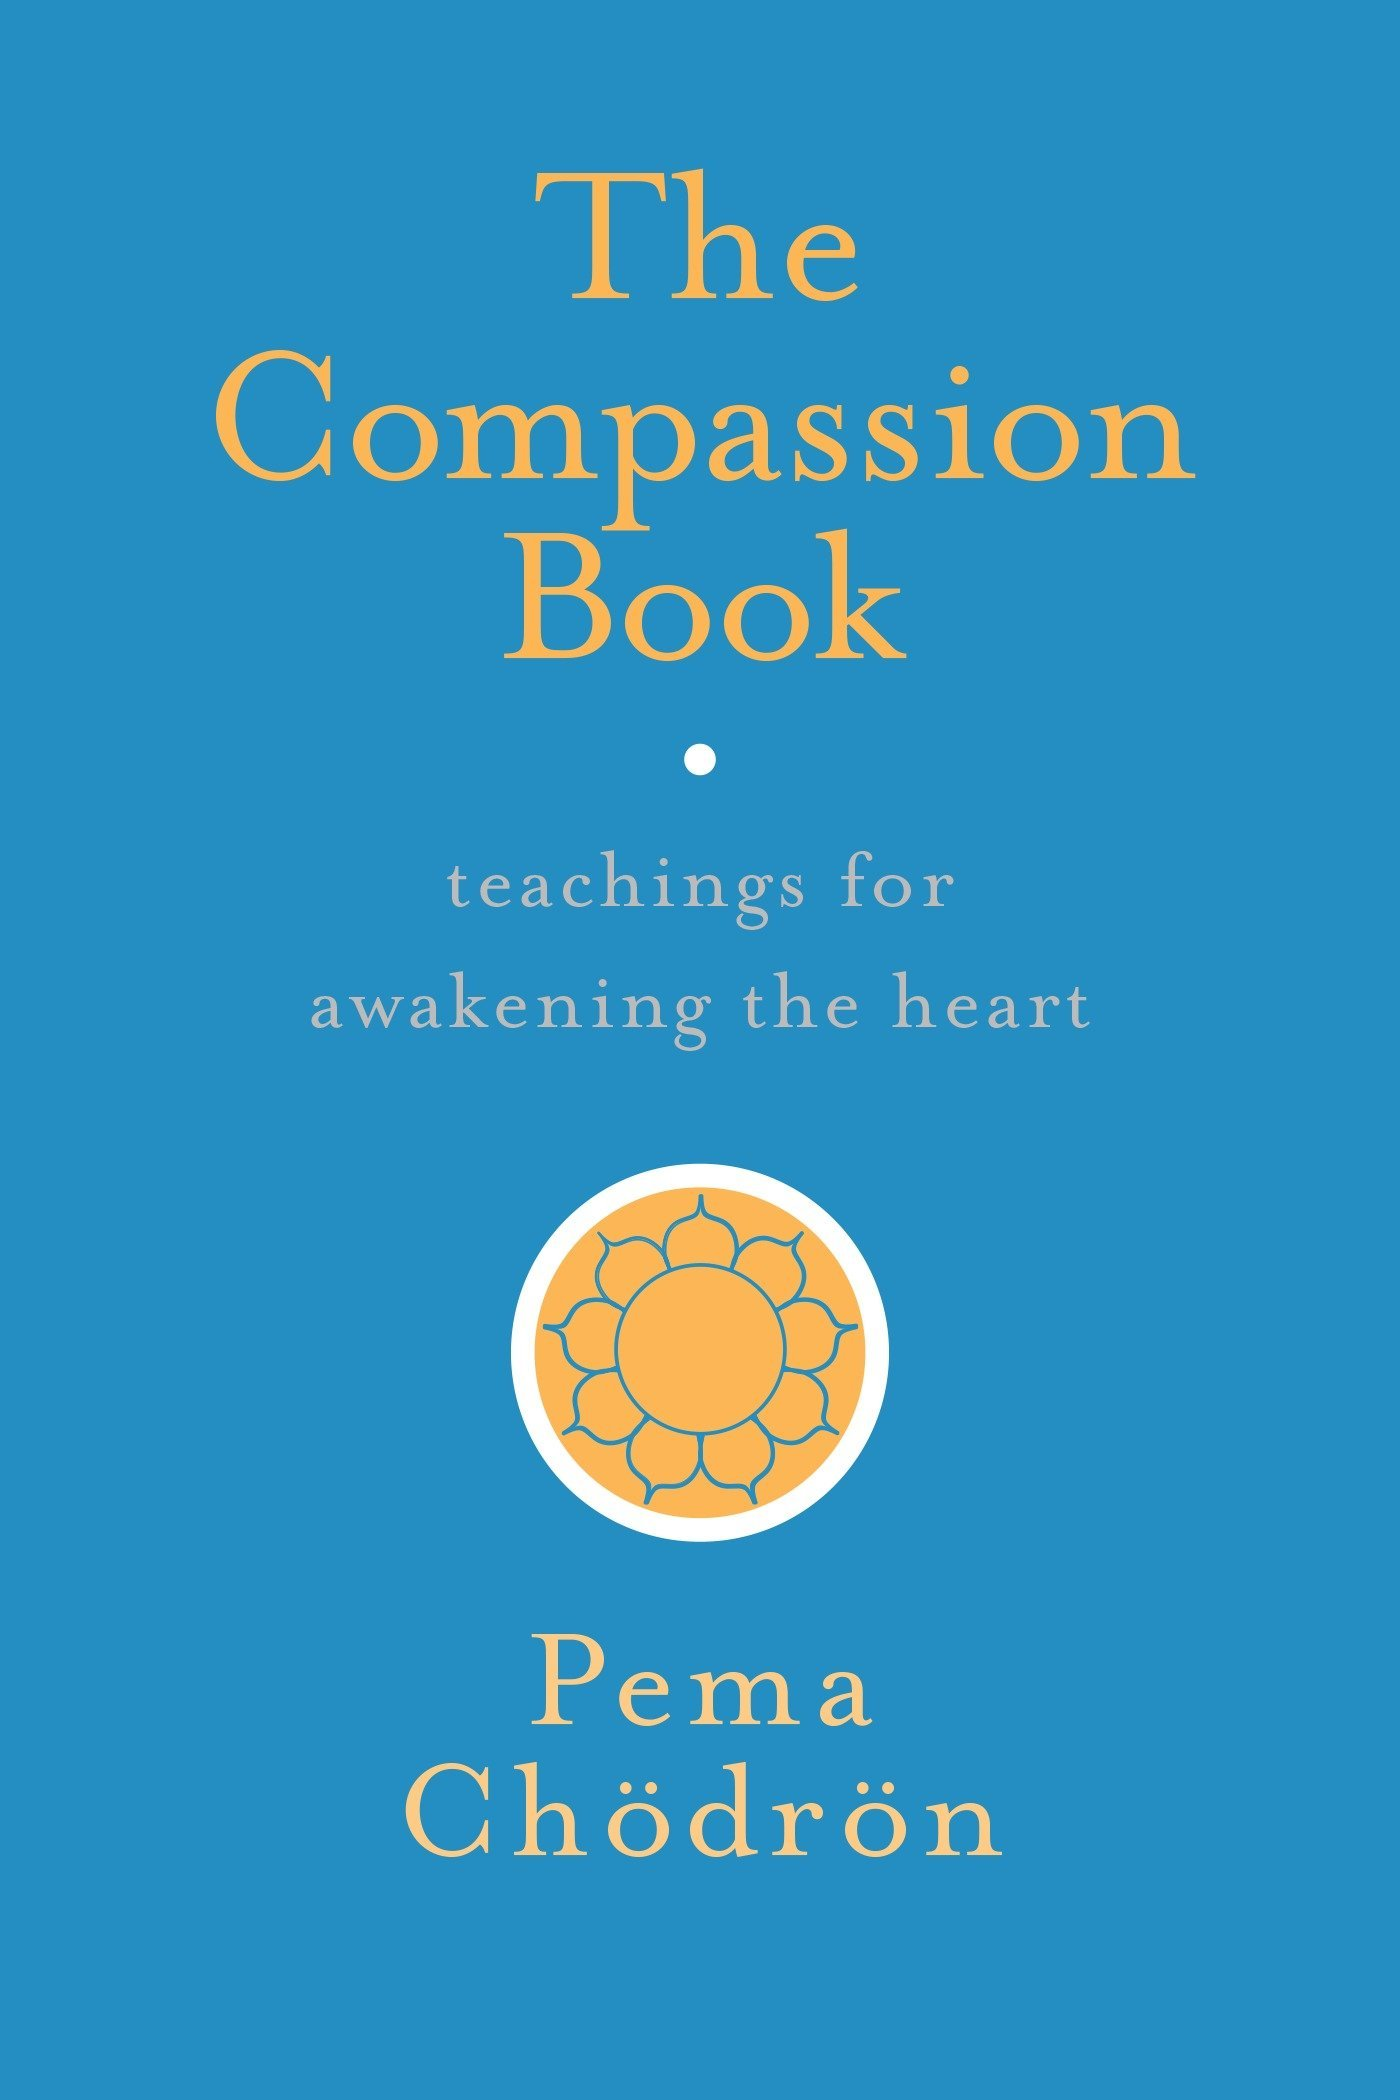 Pema Compassion Book cover art